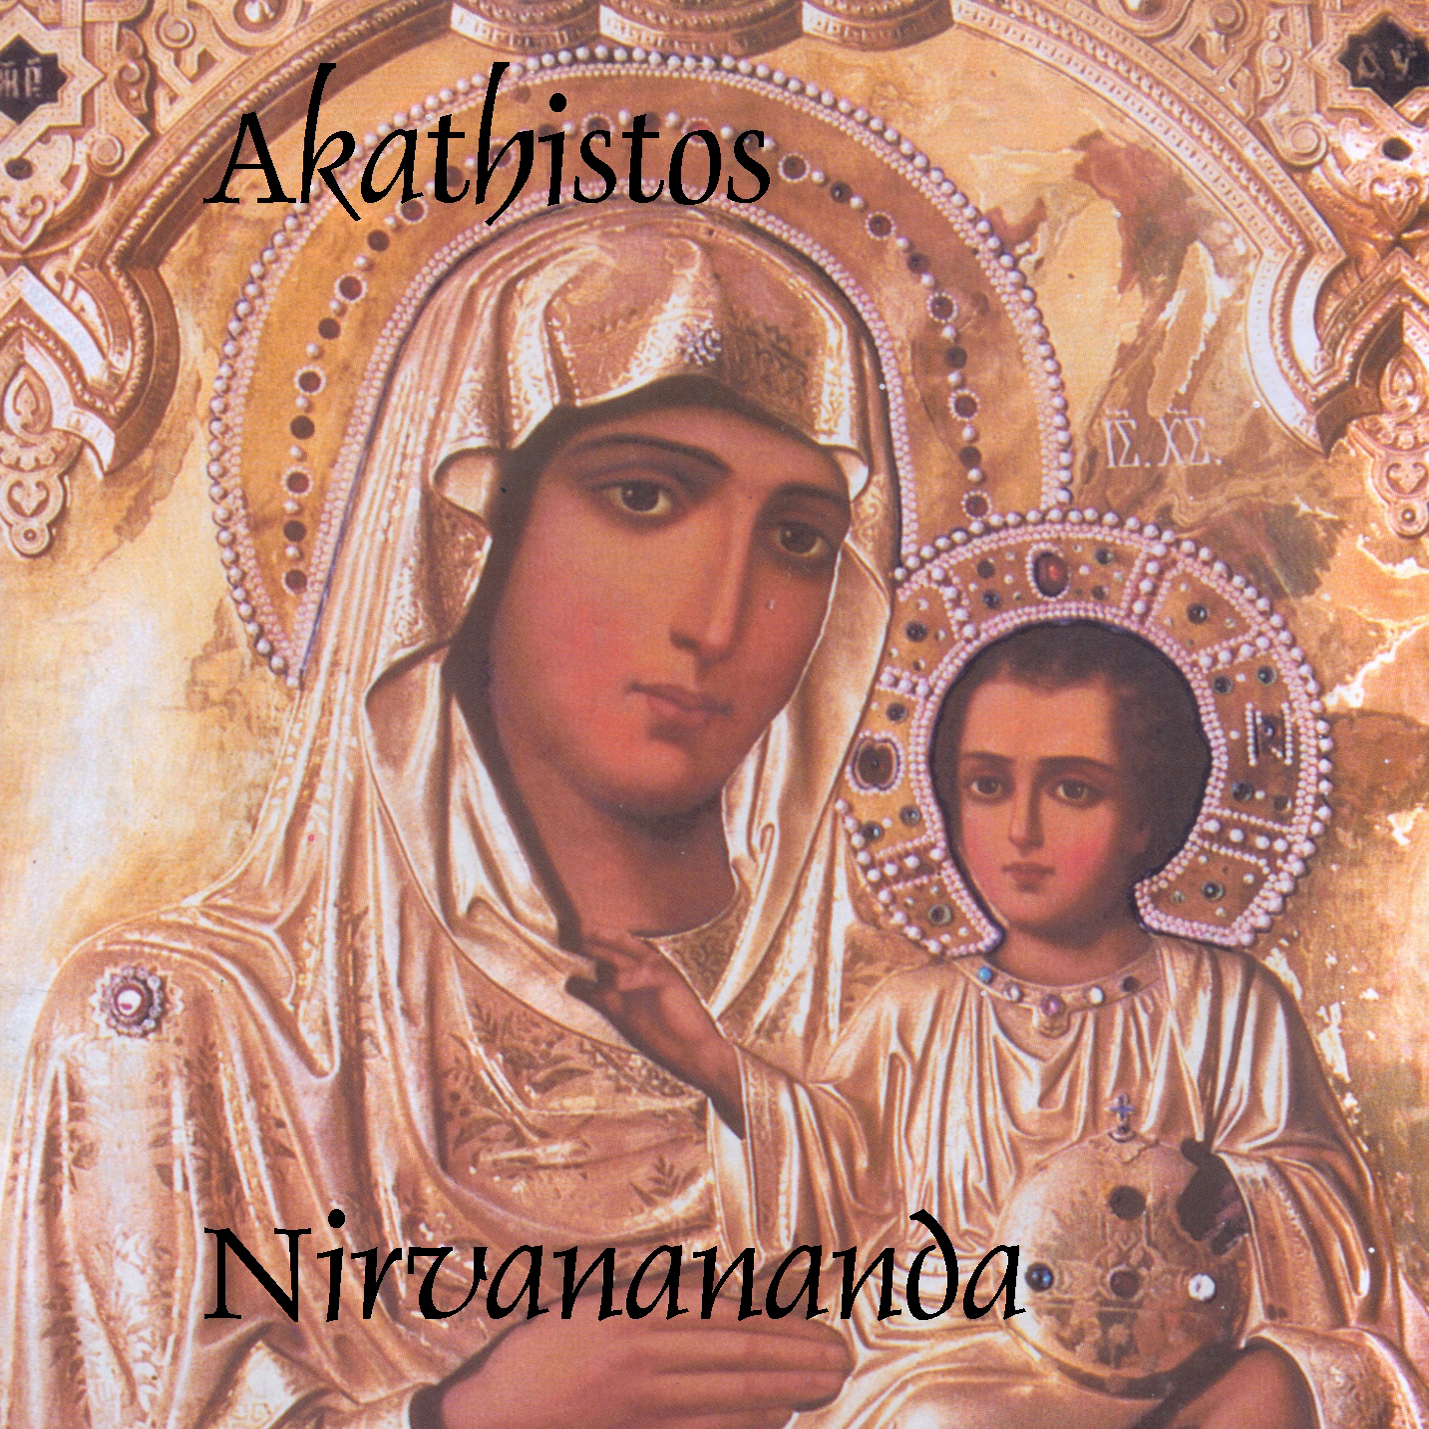 Akathistos   Not yet available for download.